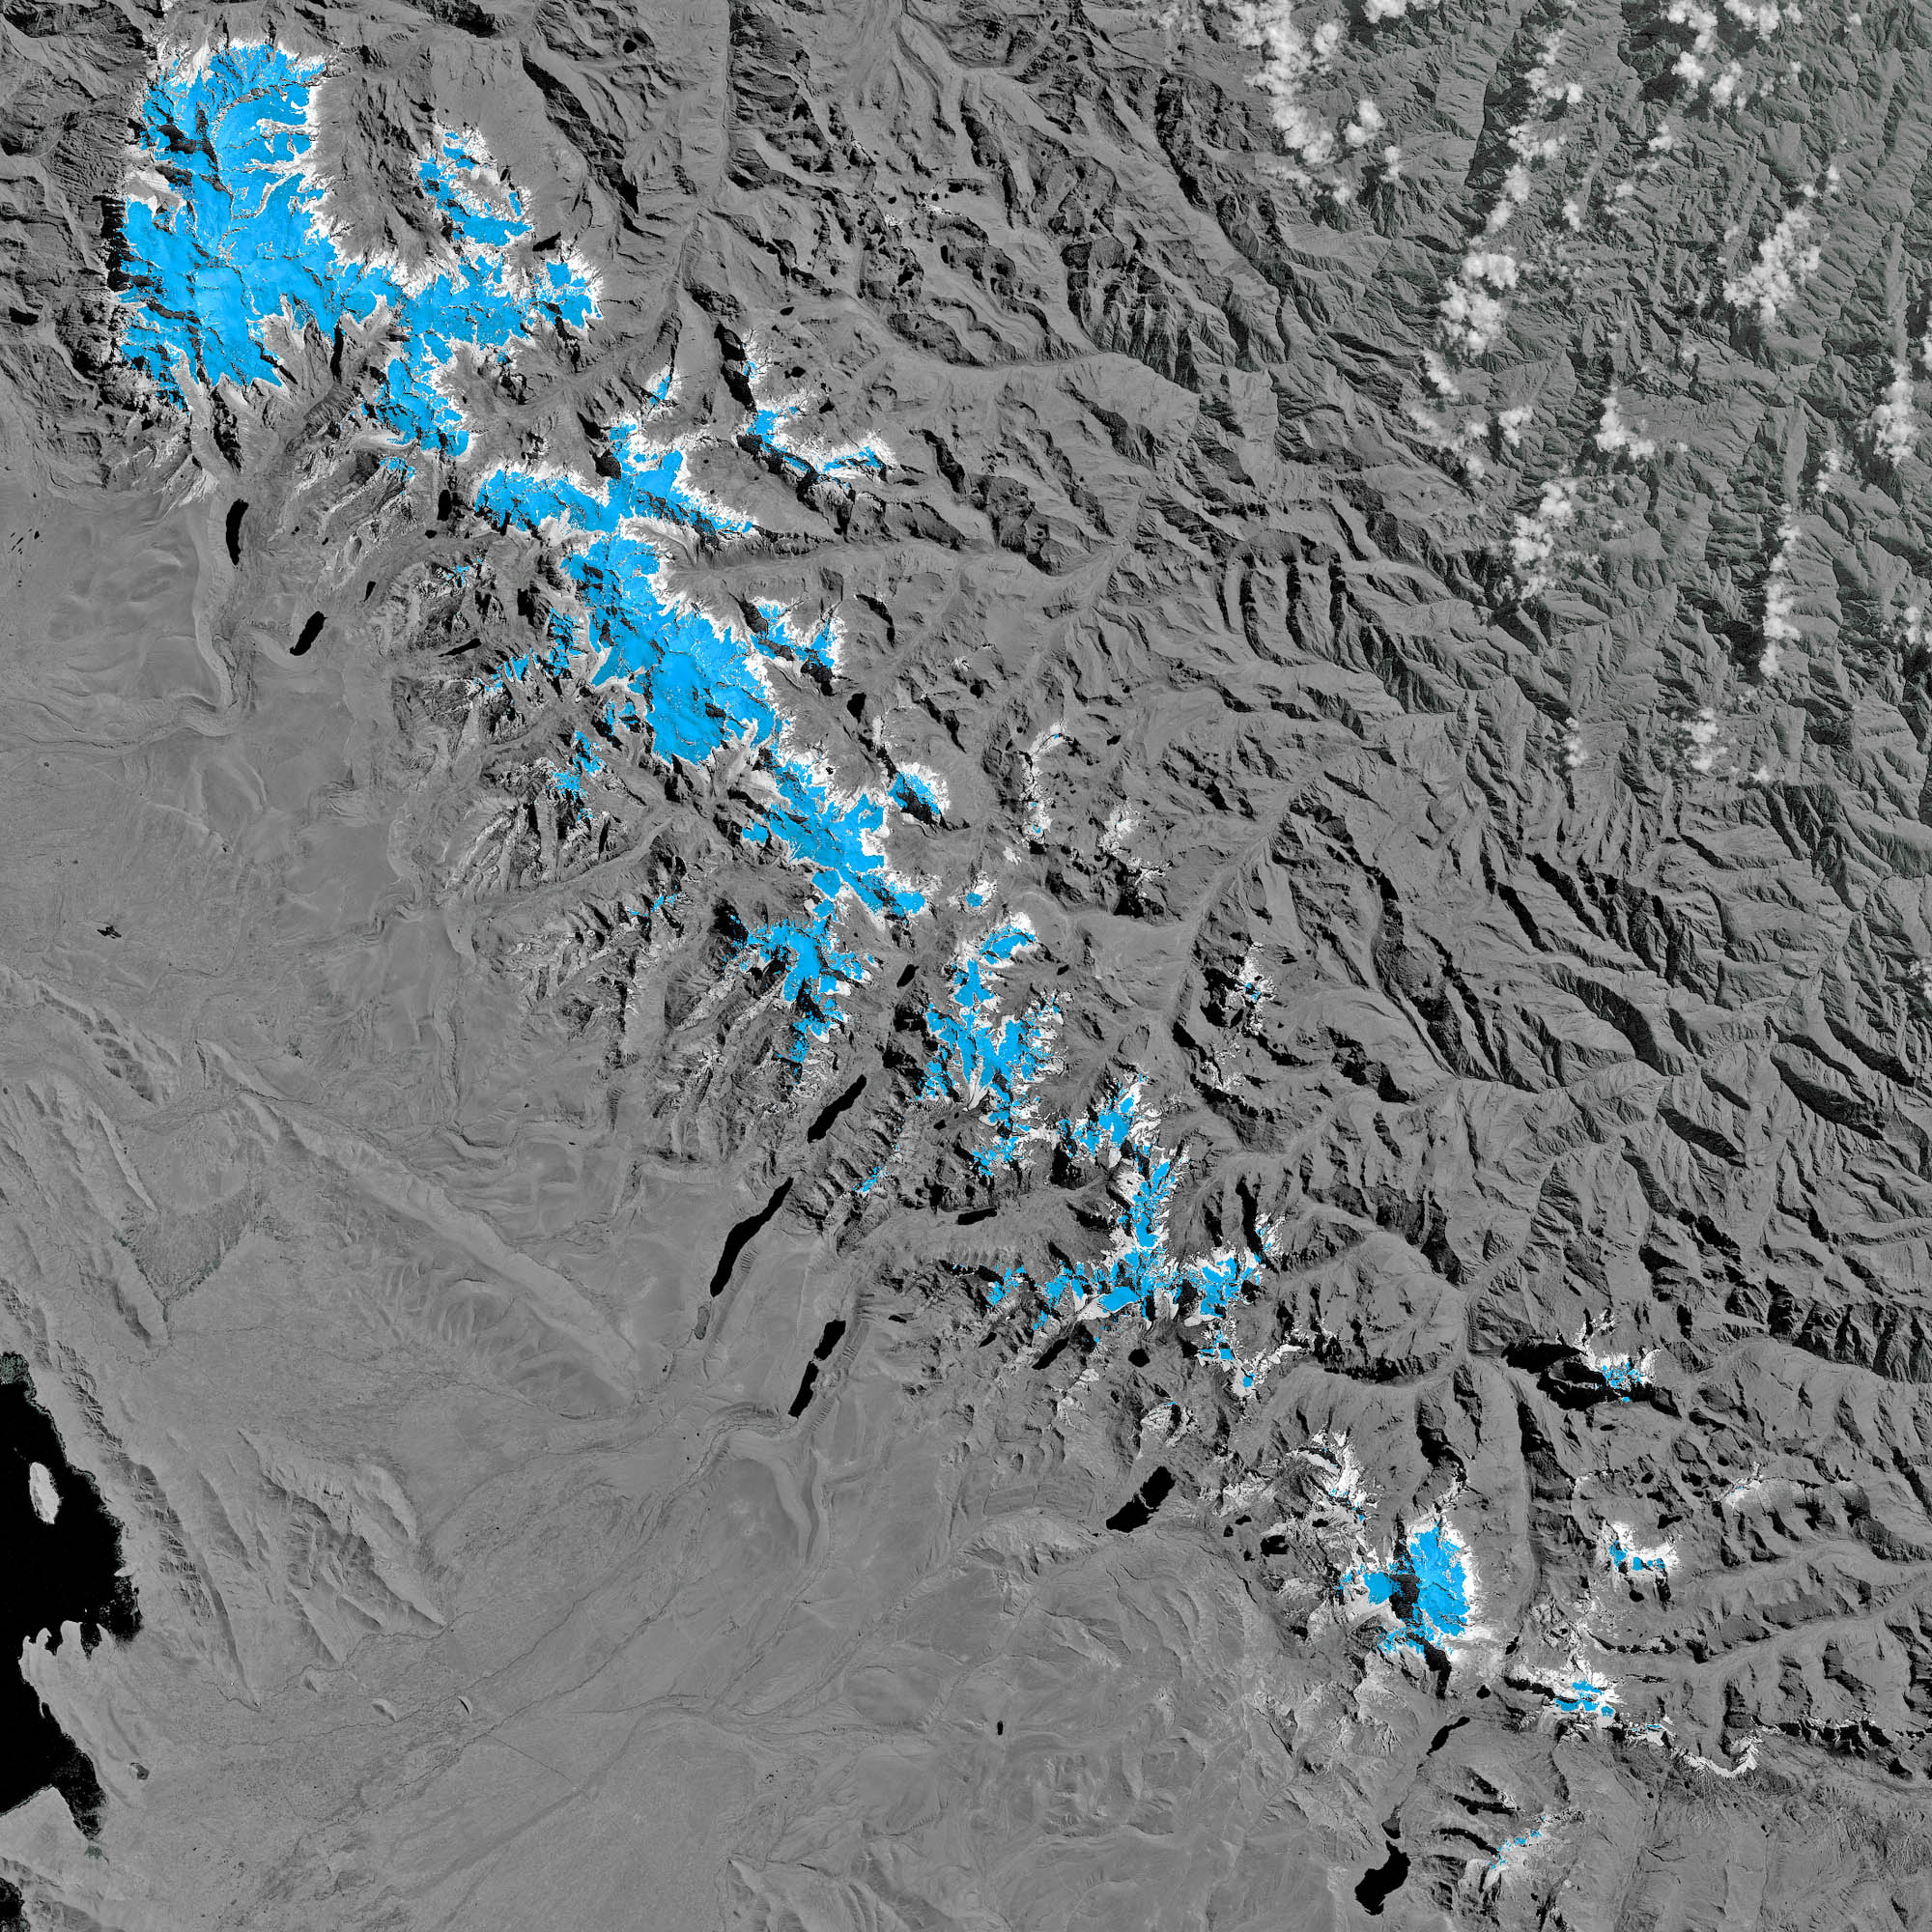 Glacier melt in the Bolivian Andes threatens lives and communities